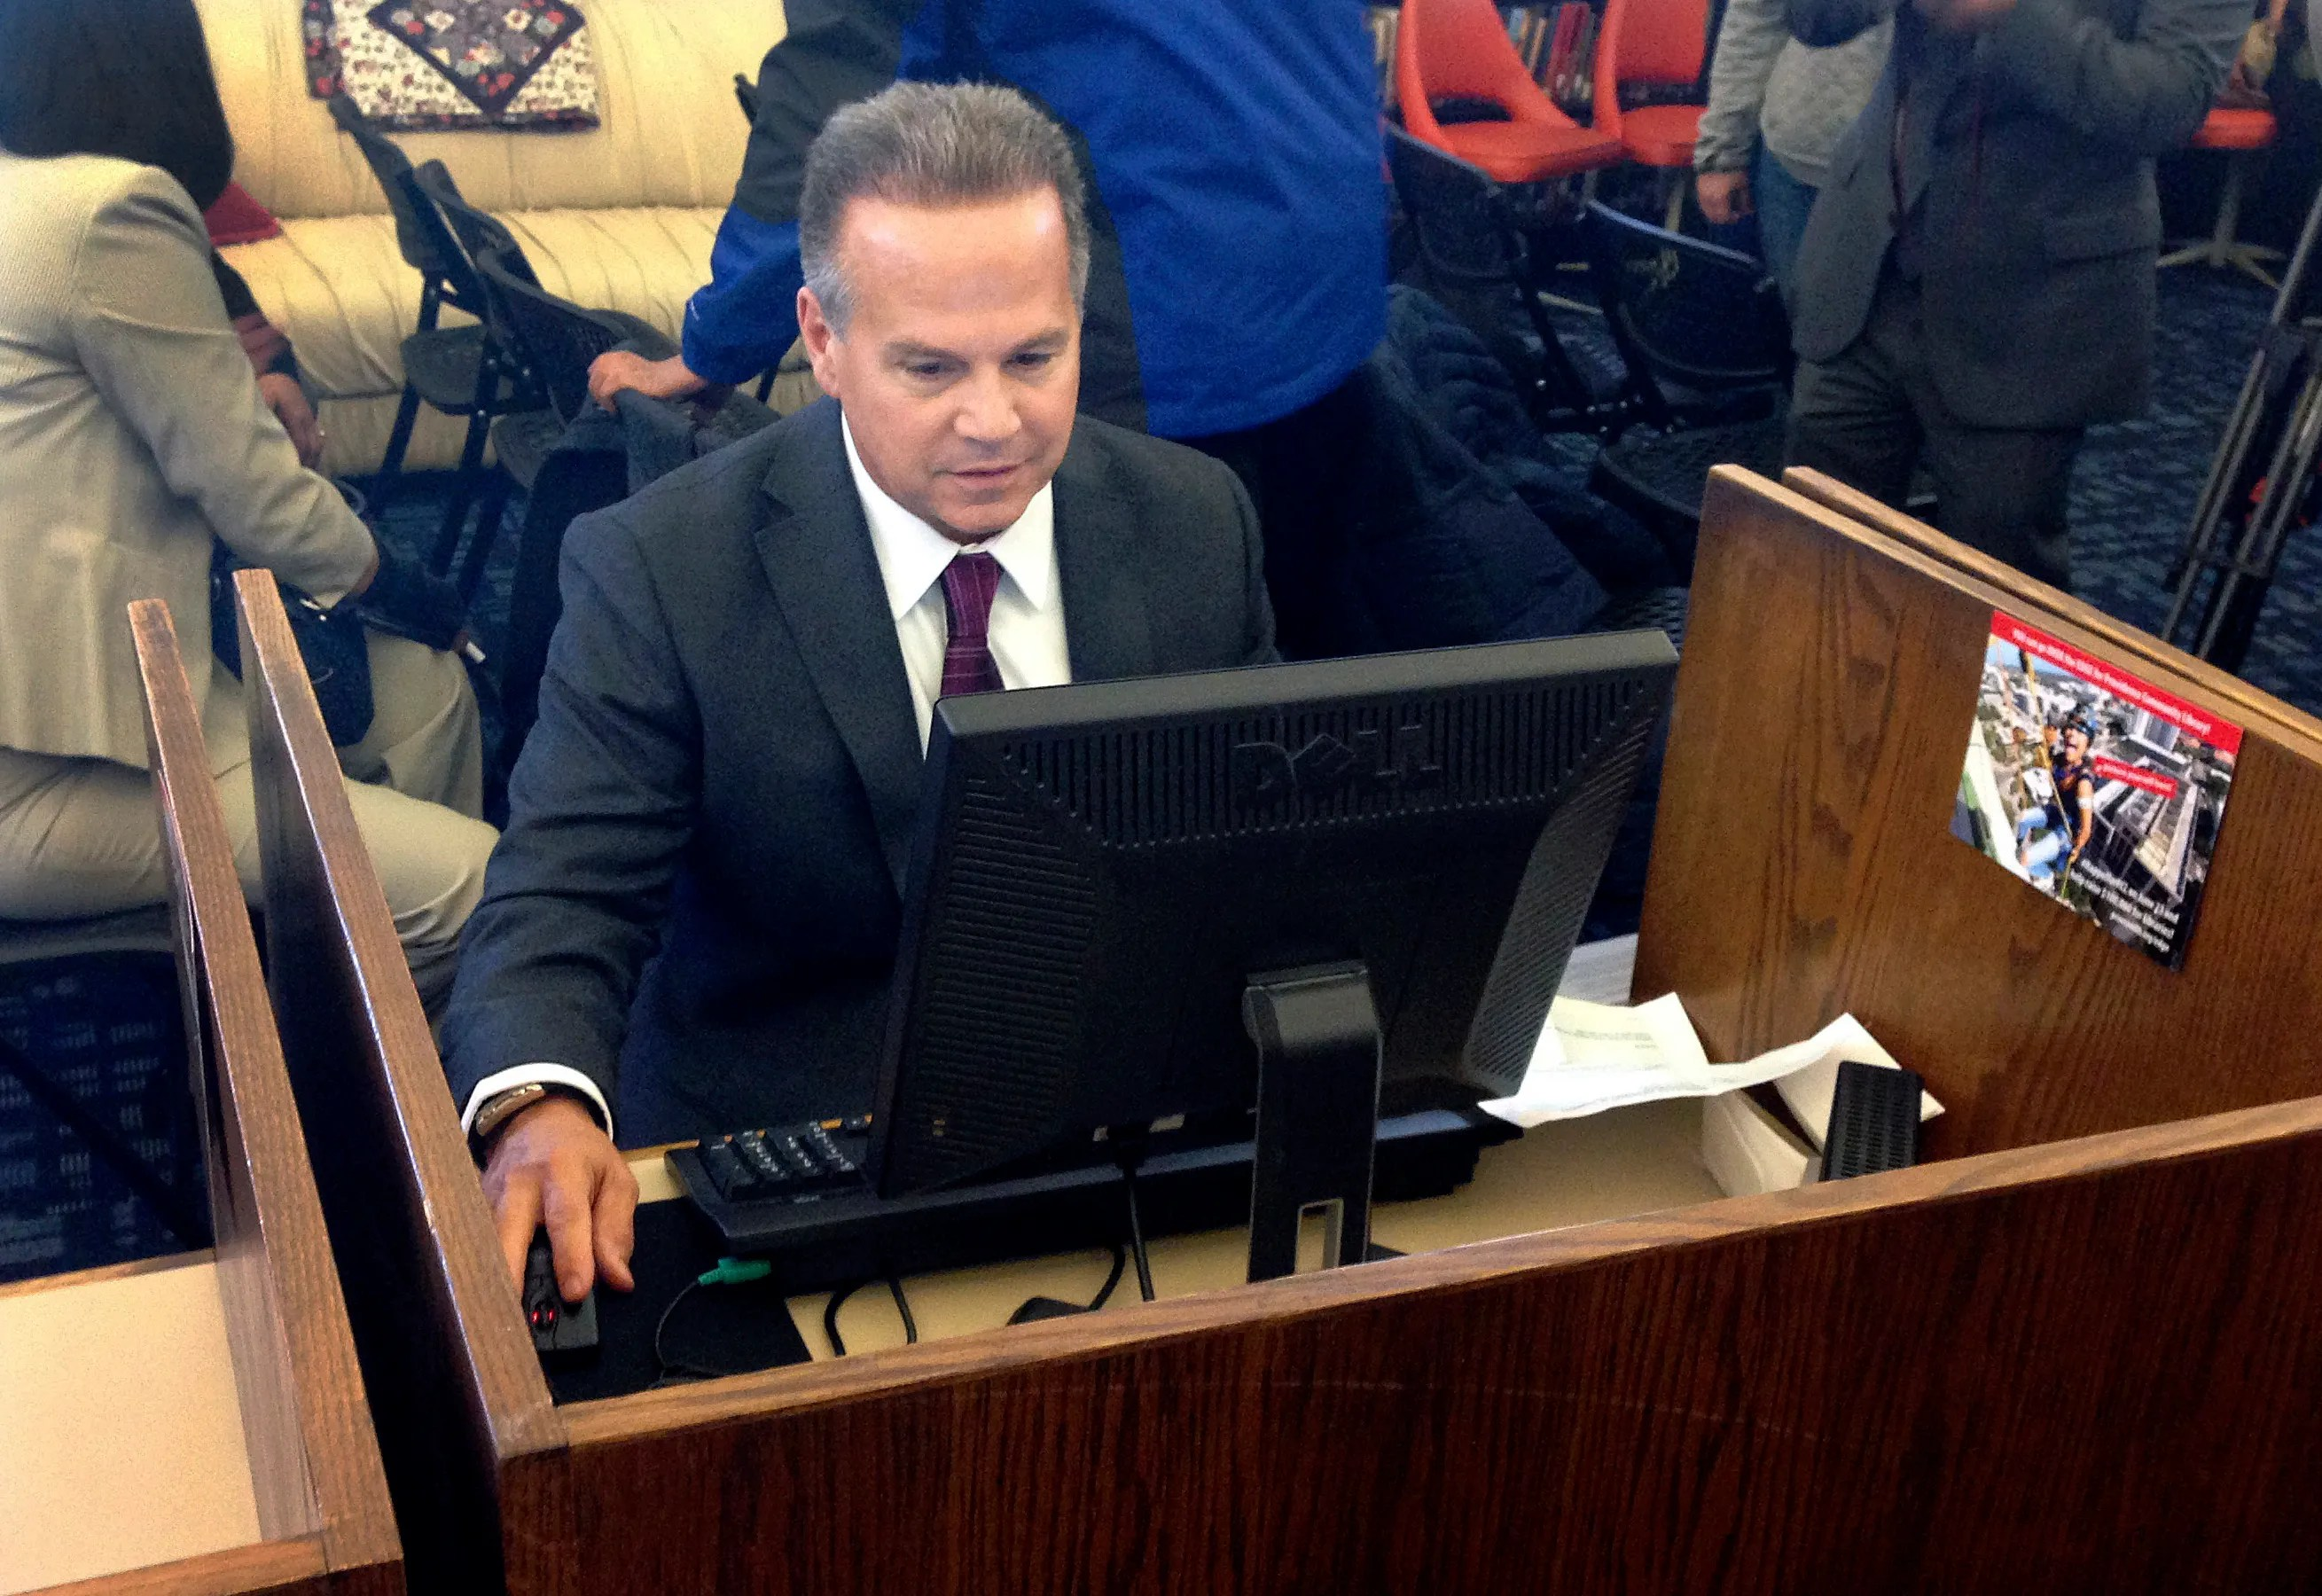 In this March 26, 2018 photo, U.S. Rep. David Cicilline completes his census form on a computer at a library in Providence, R.I., during the nation's only test run of the 2020 Census.